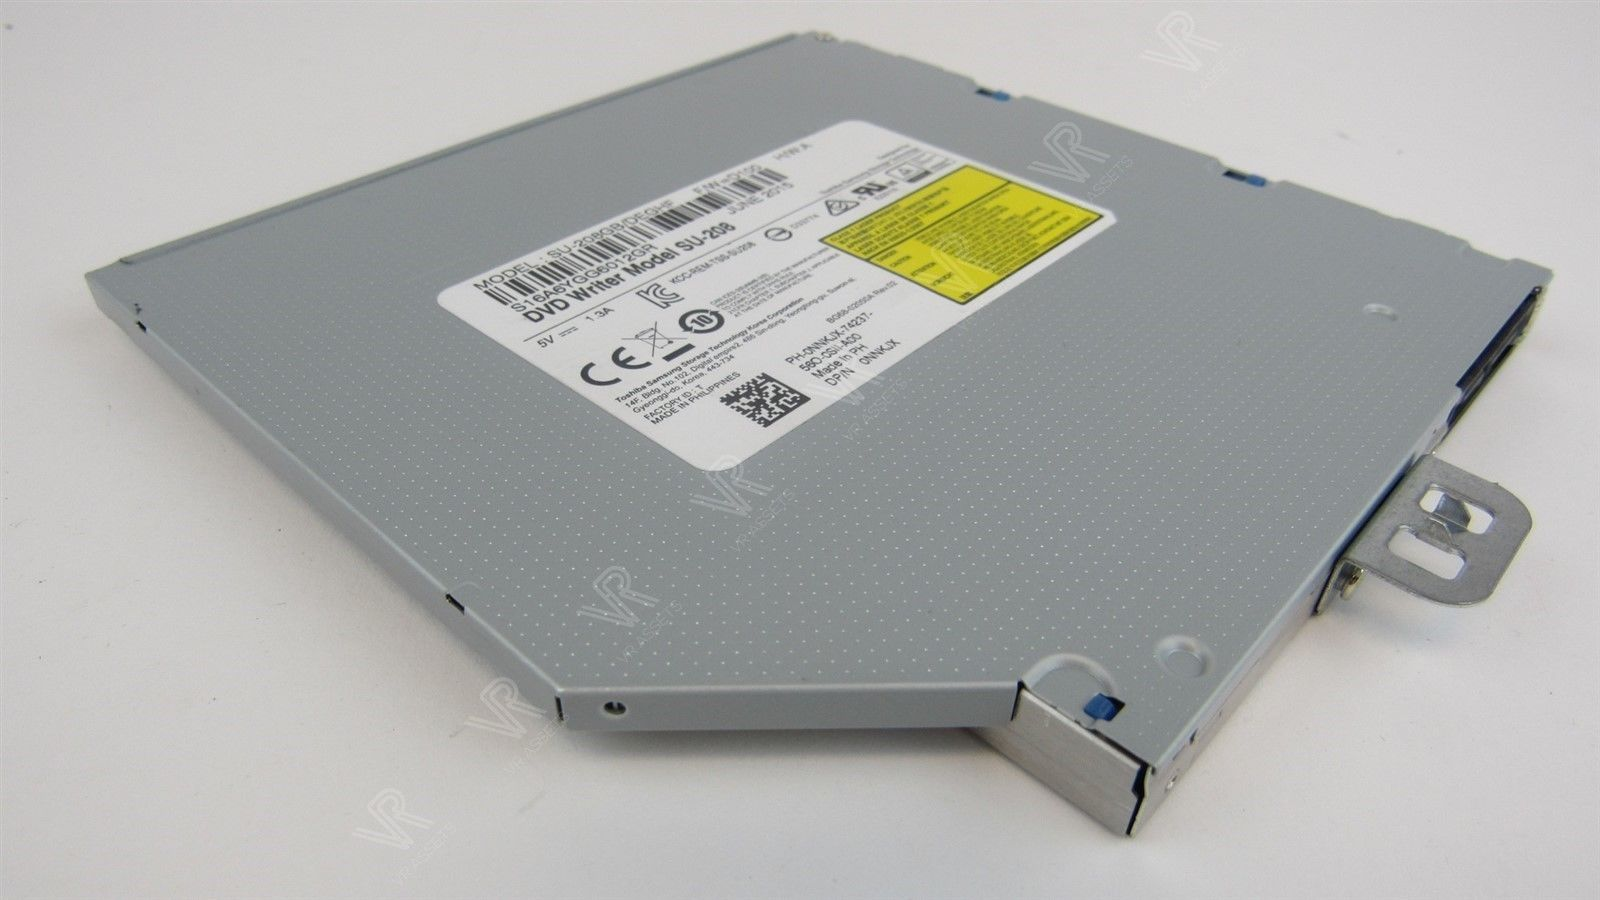 Dell Inspiron 15 5000 Series DVD+RW Writer Burner Optical Drive SU-208 NNKJX